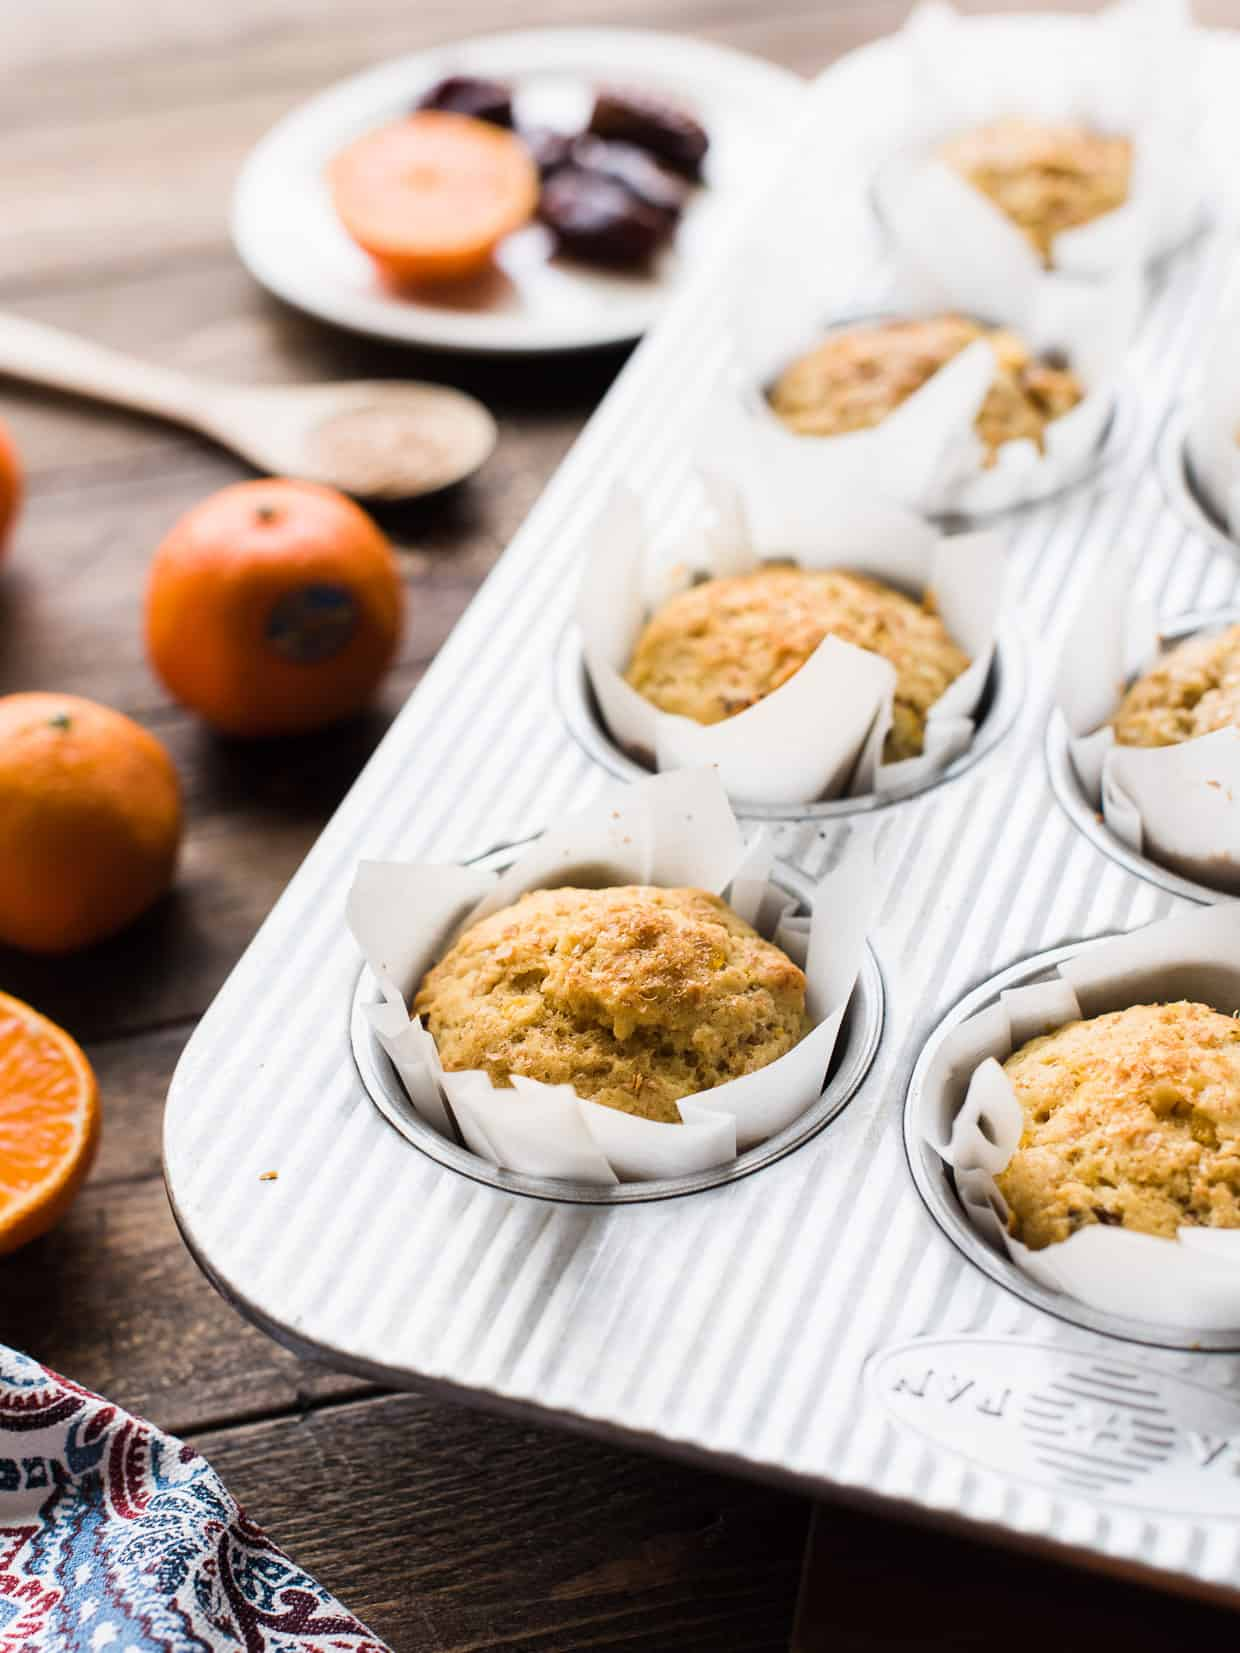 Mandarin Orange Ginger Date Muffins